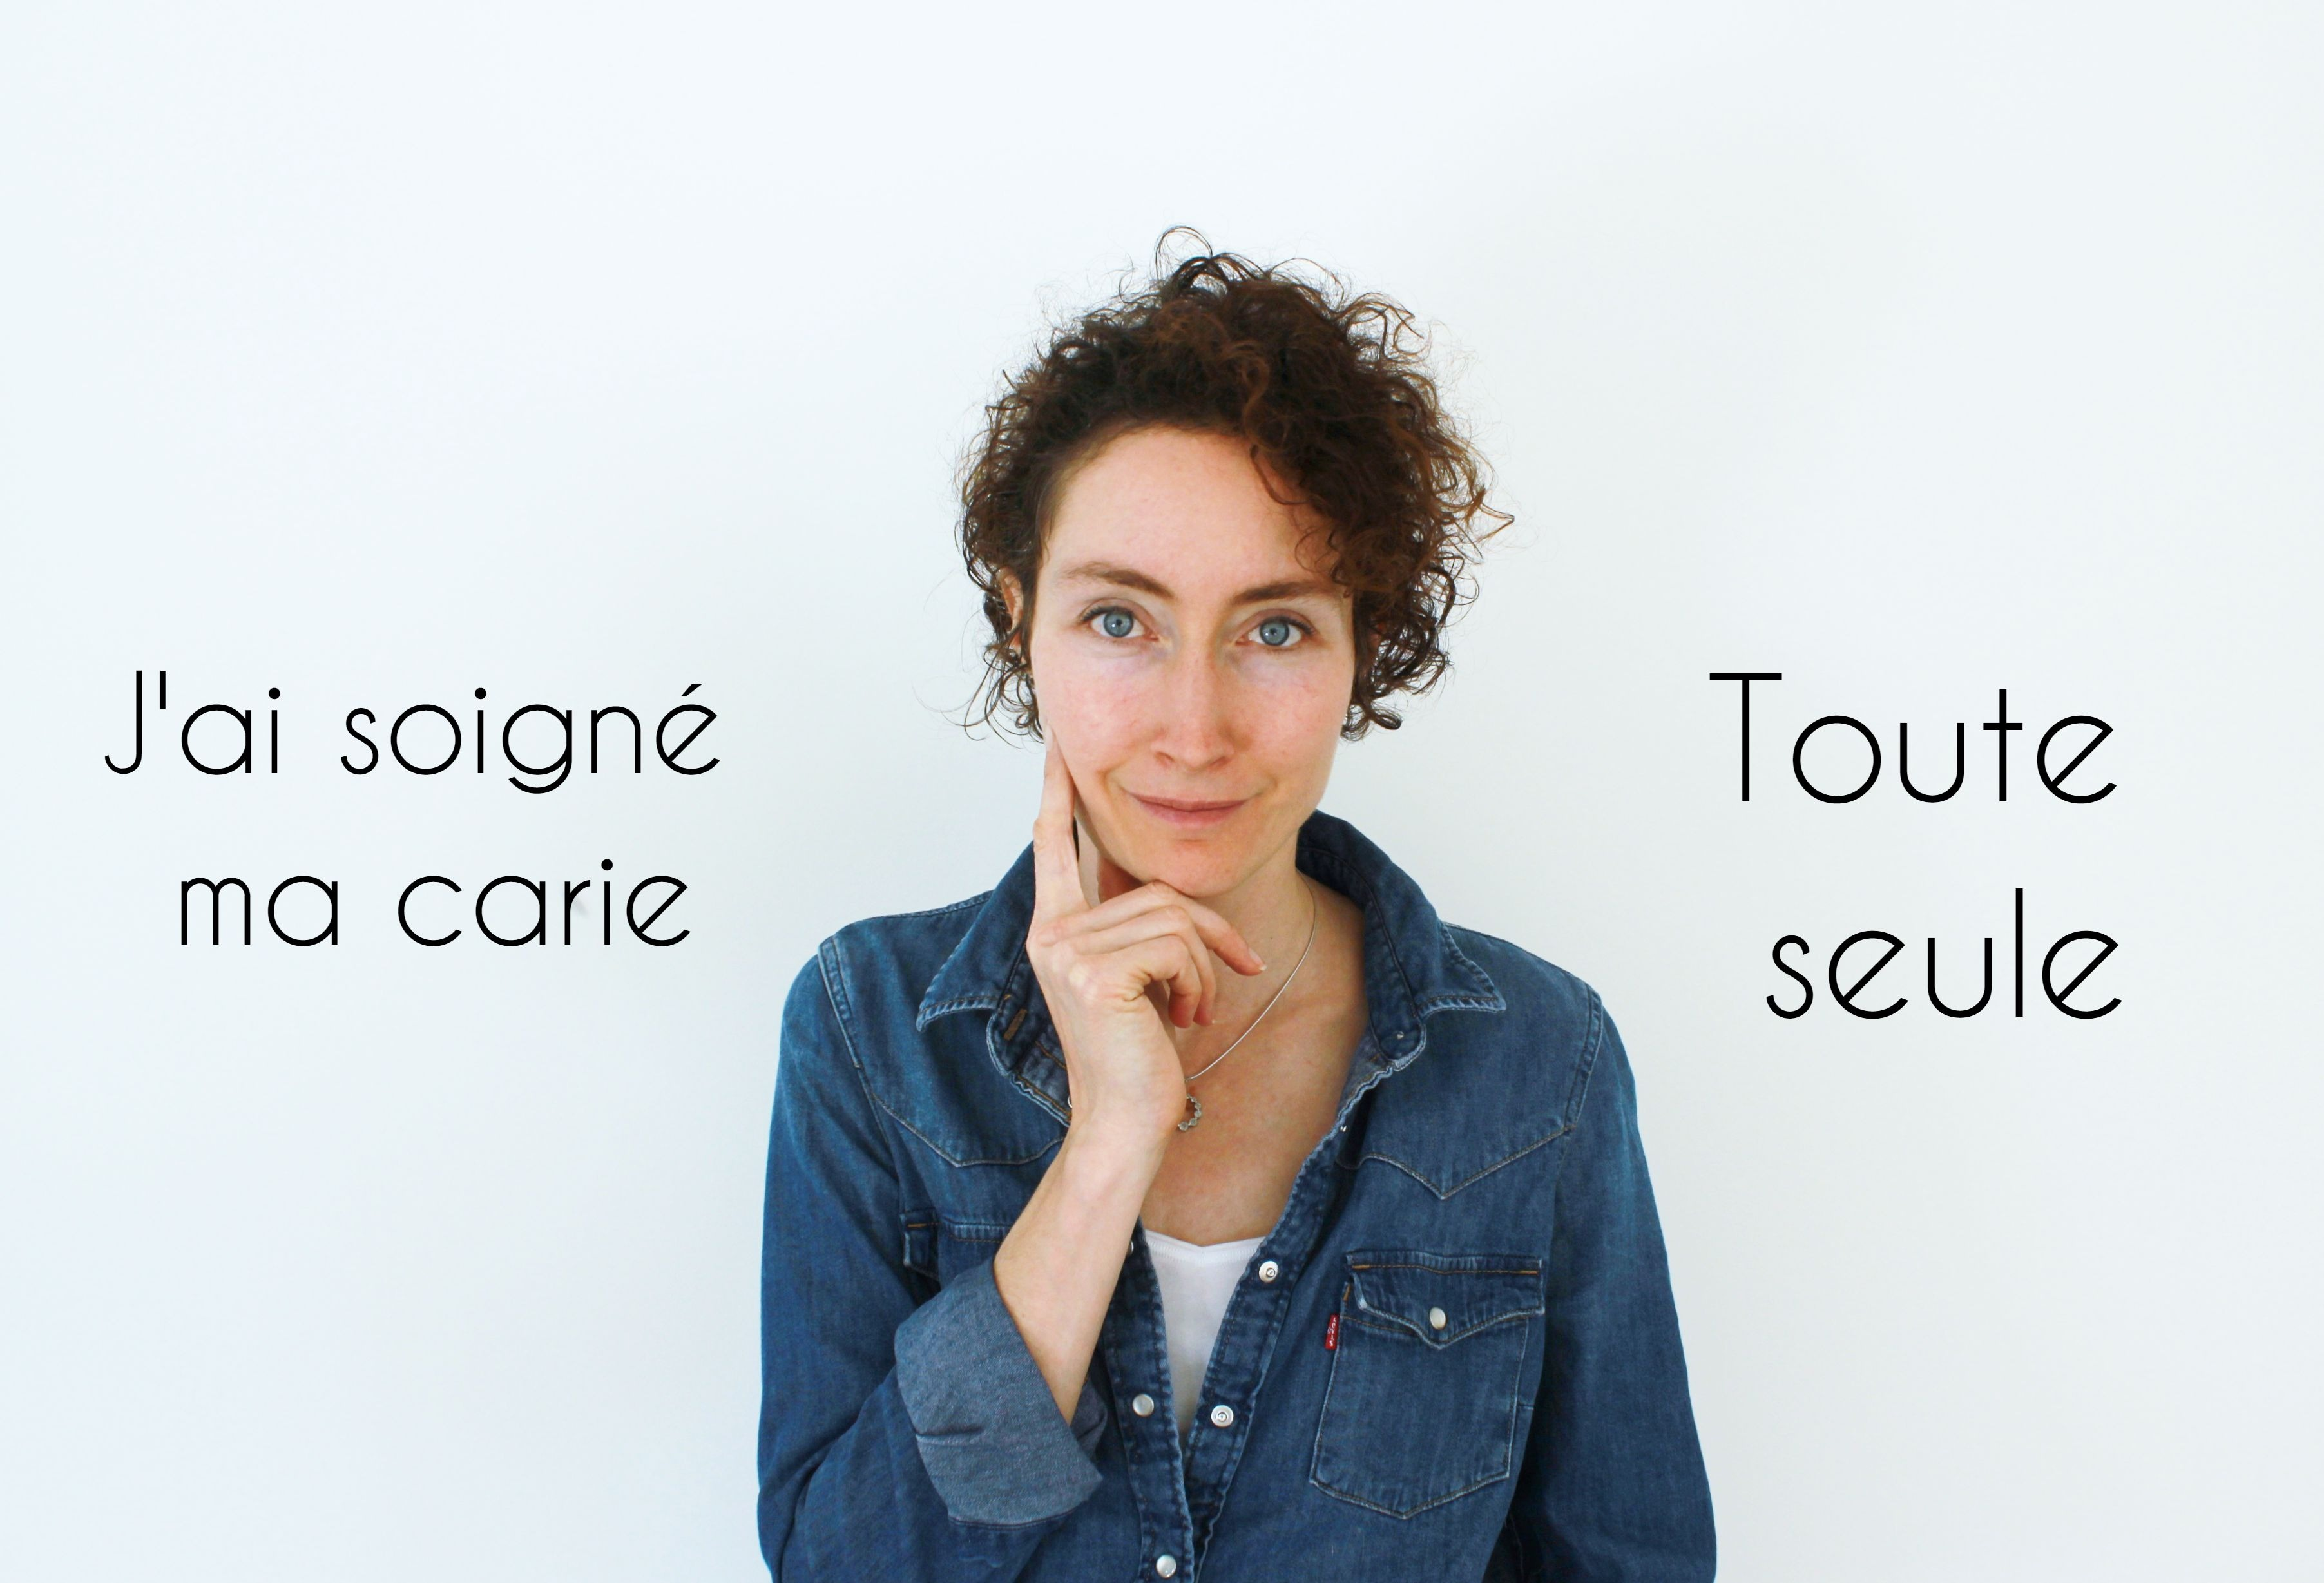 Carie solution naturelle